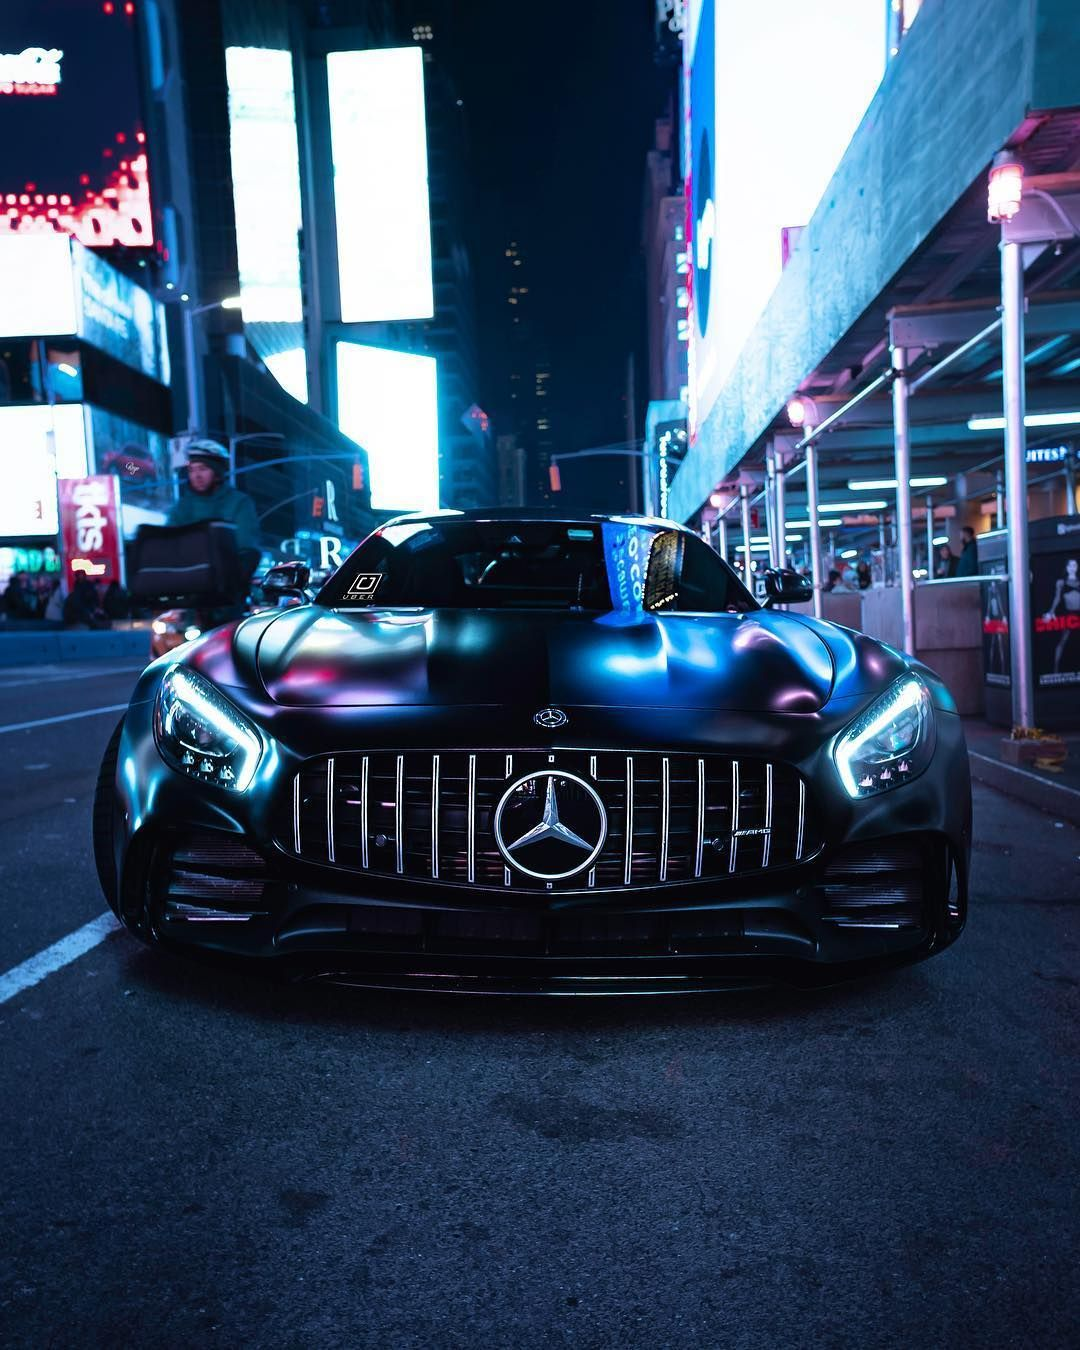 It Doesn T Get Better Than This Mercedes My Ultimate Supercar Ride Dreamcars Supercar Luxury Car Coolcars E Super Cars Mercedes Benz Amg Benz